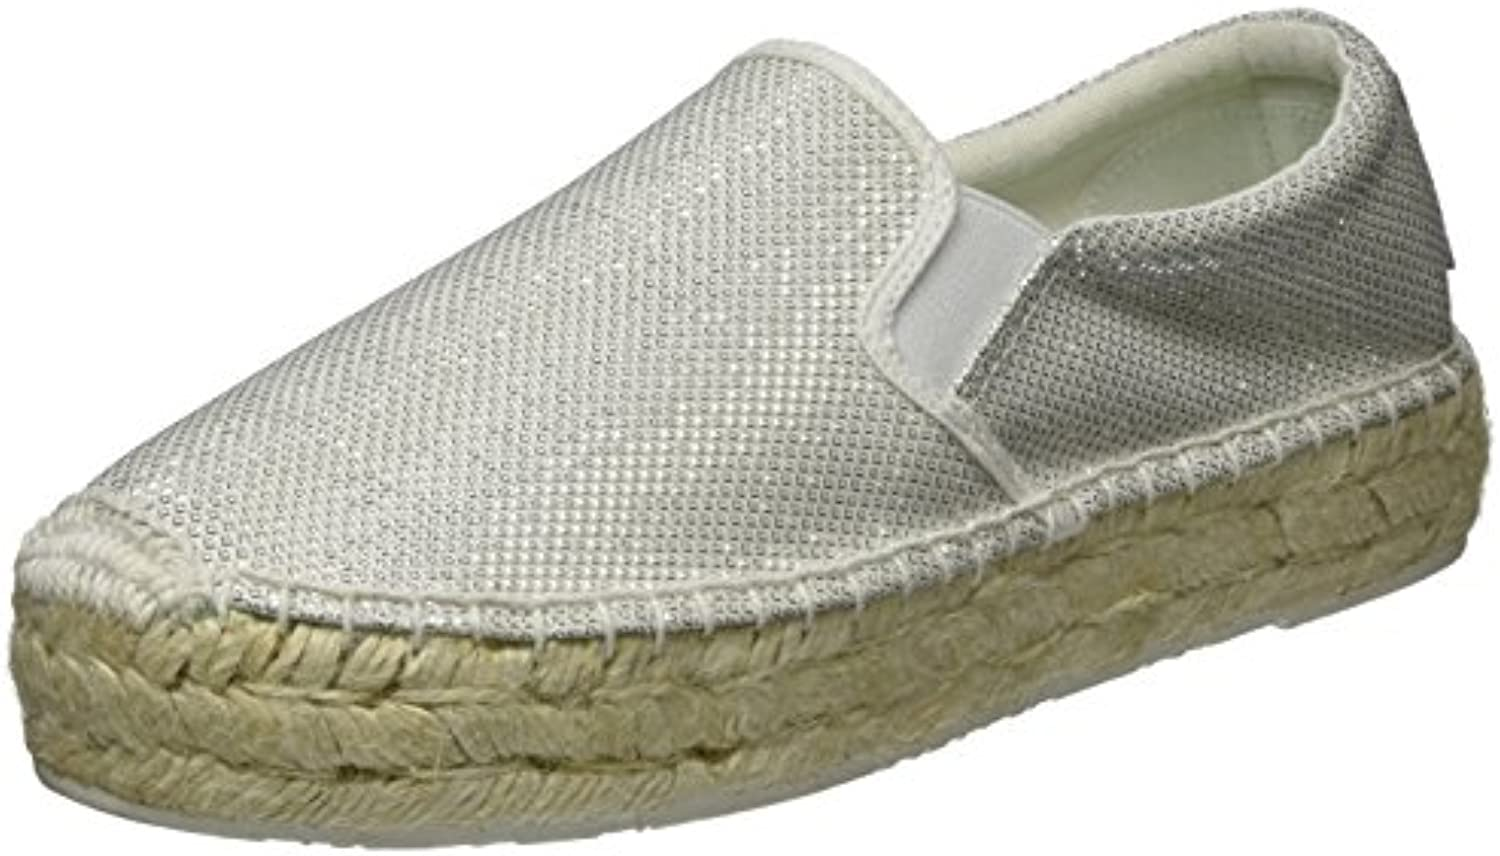 b5f90ac7d1da96 replay femmes & eacute; lawton lawton lawton espadrilles, or b01mtudonk  parent | Shop 0f6159